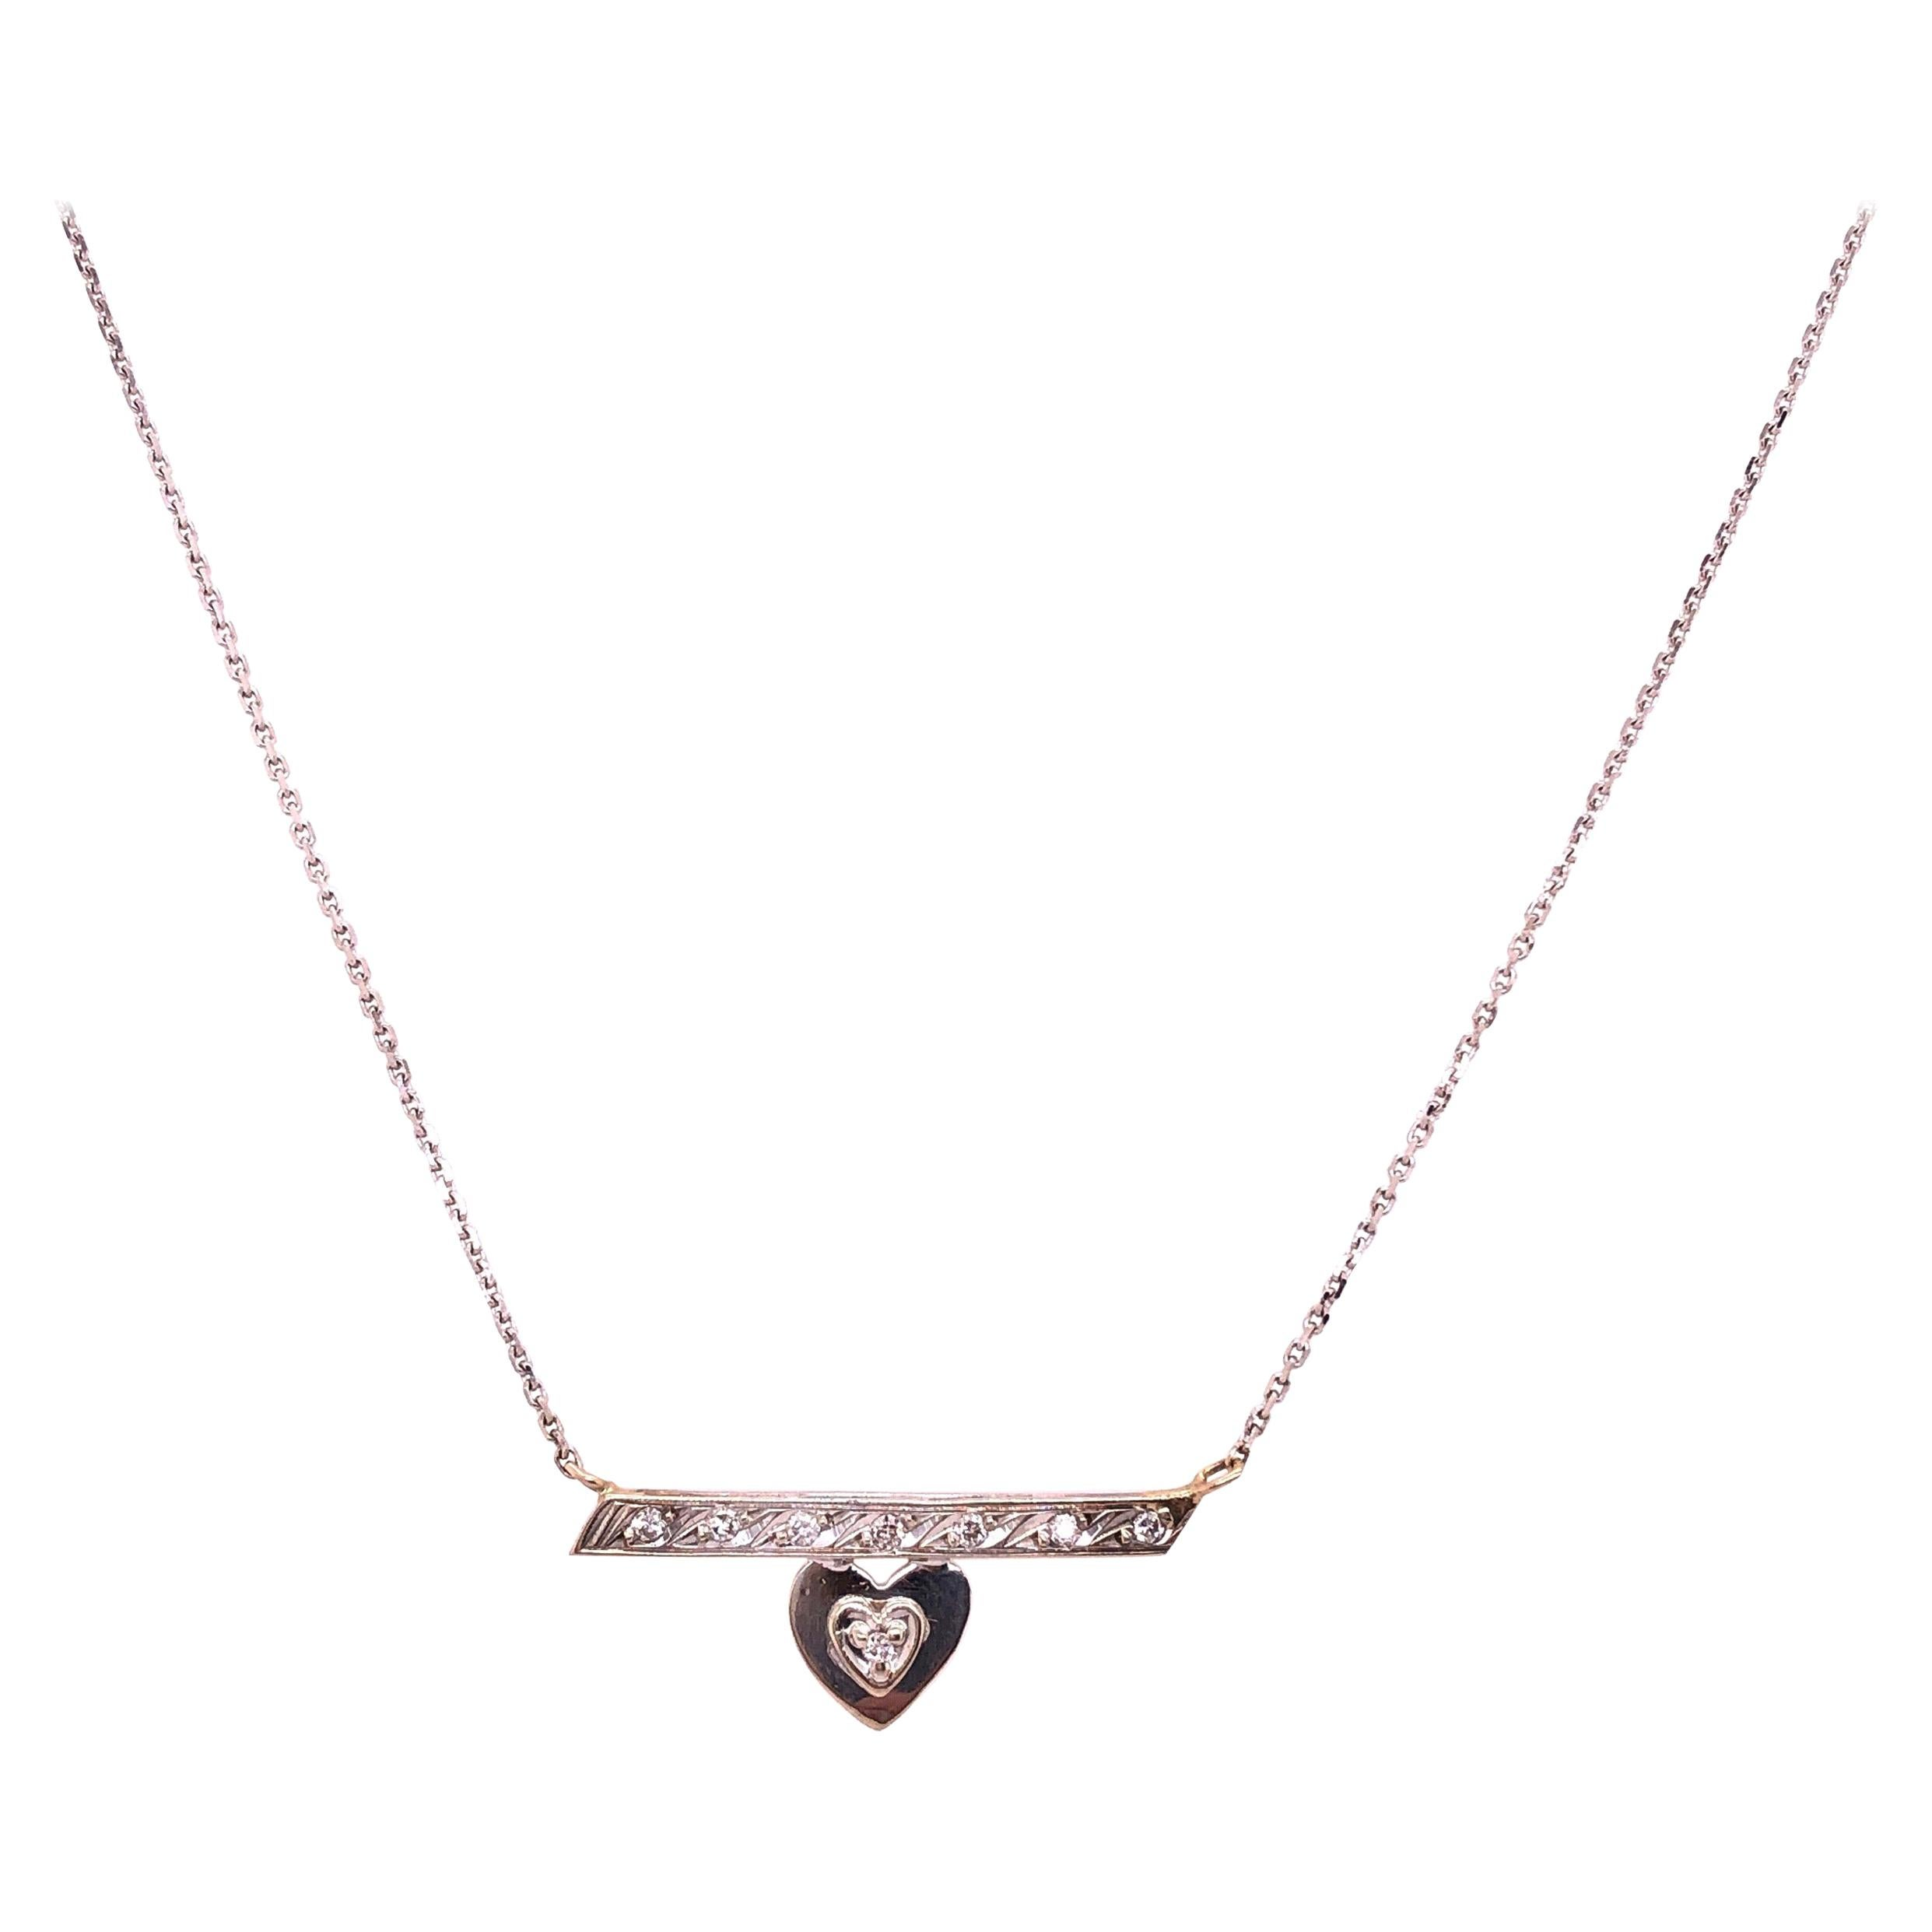 14 Karat White Gold Free Form Heart Charm with Diamonds Necklace